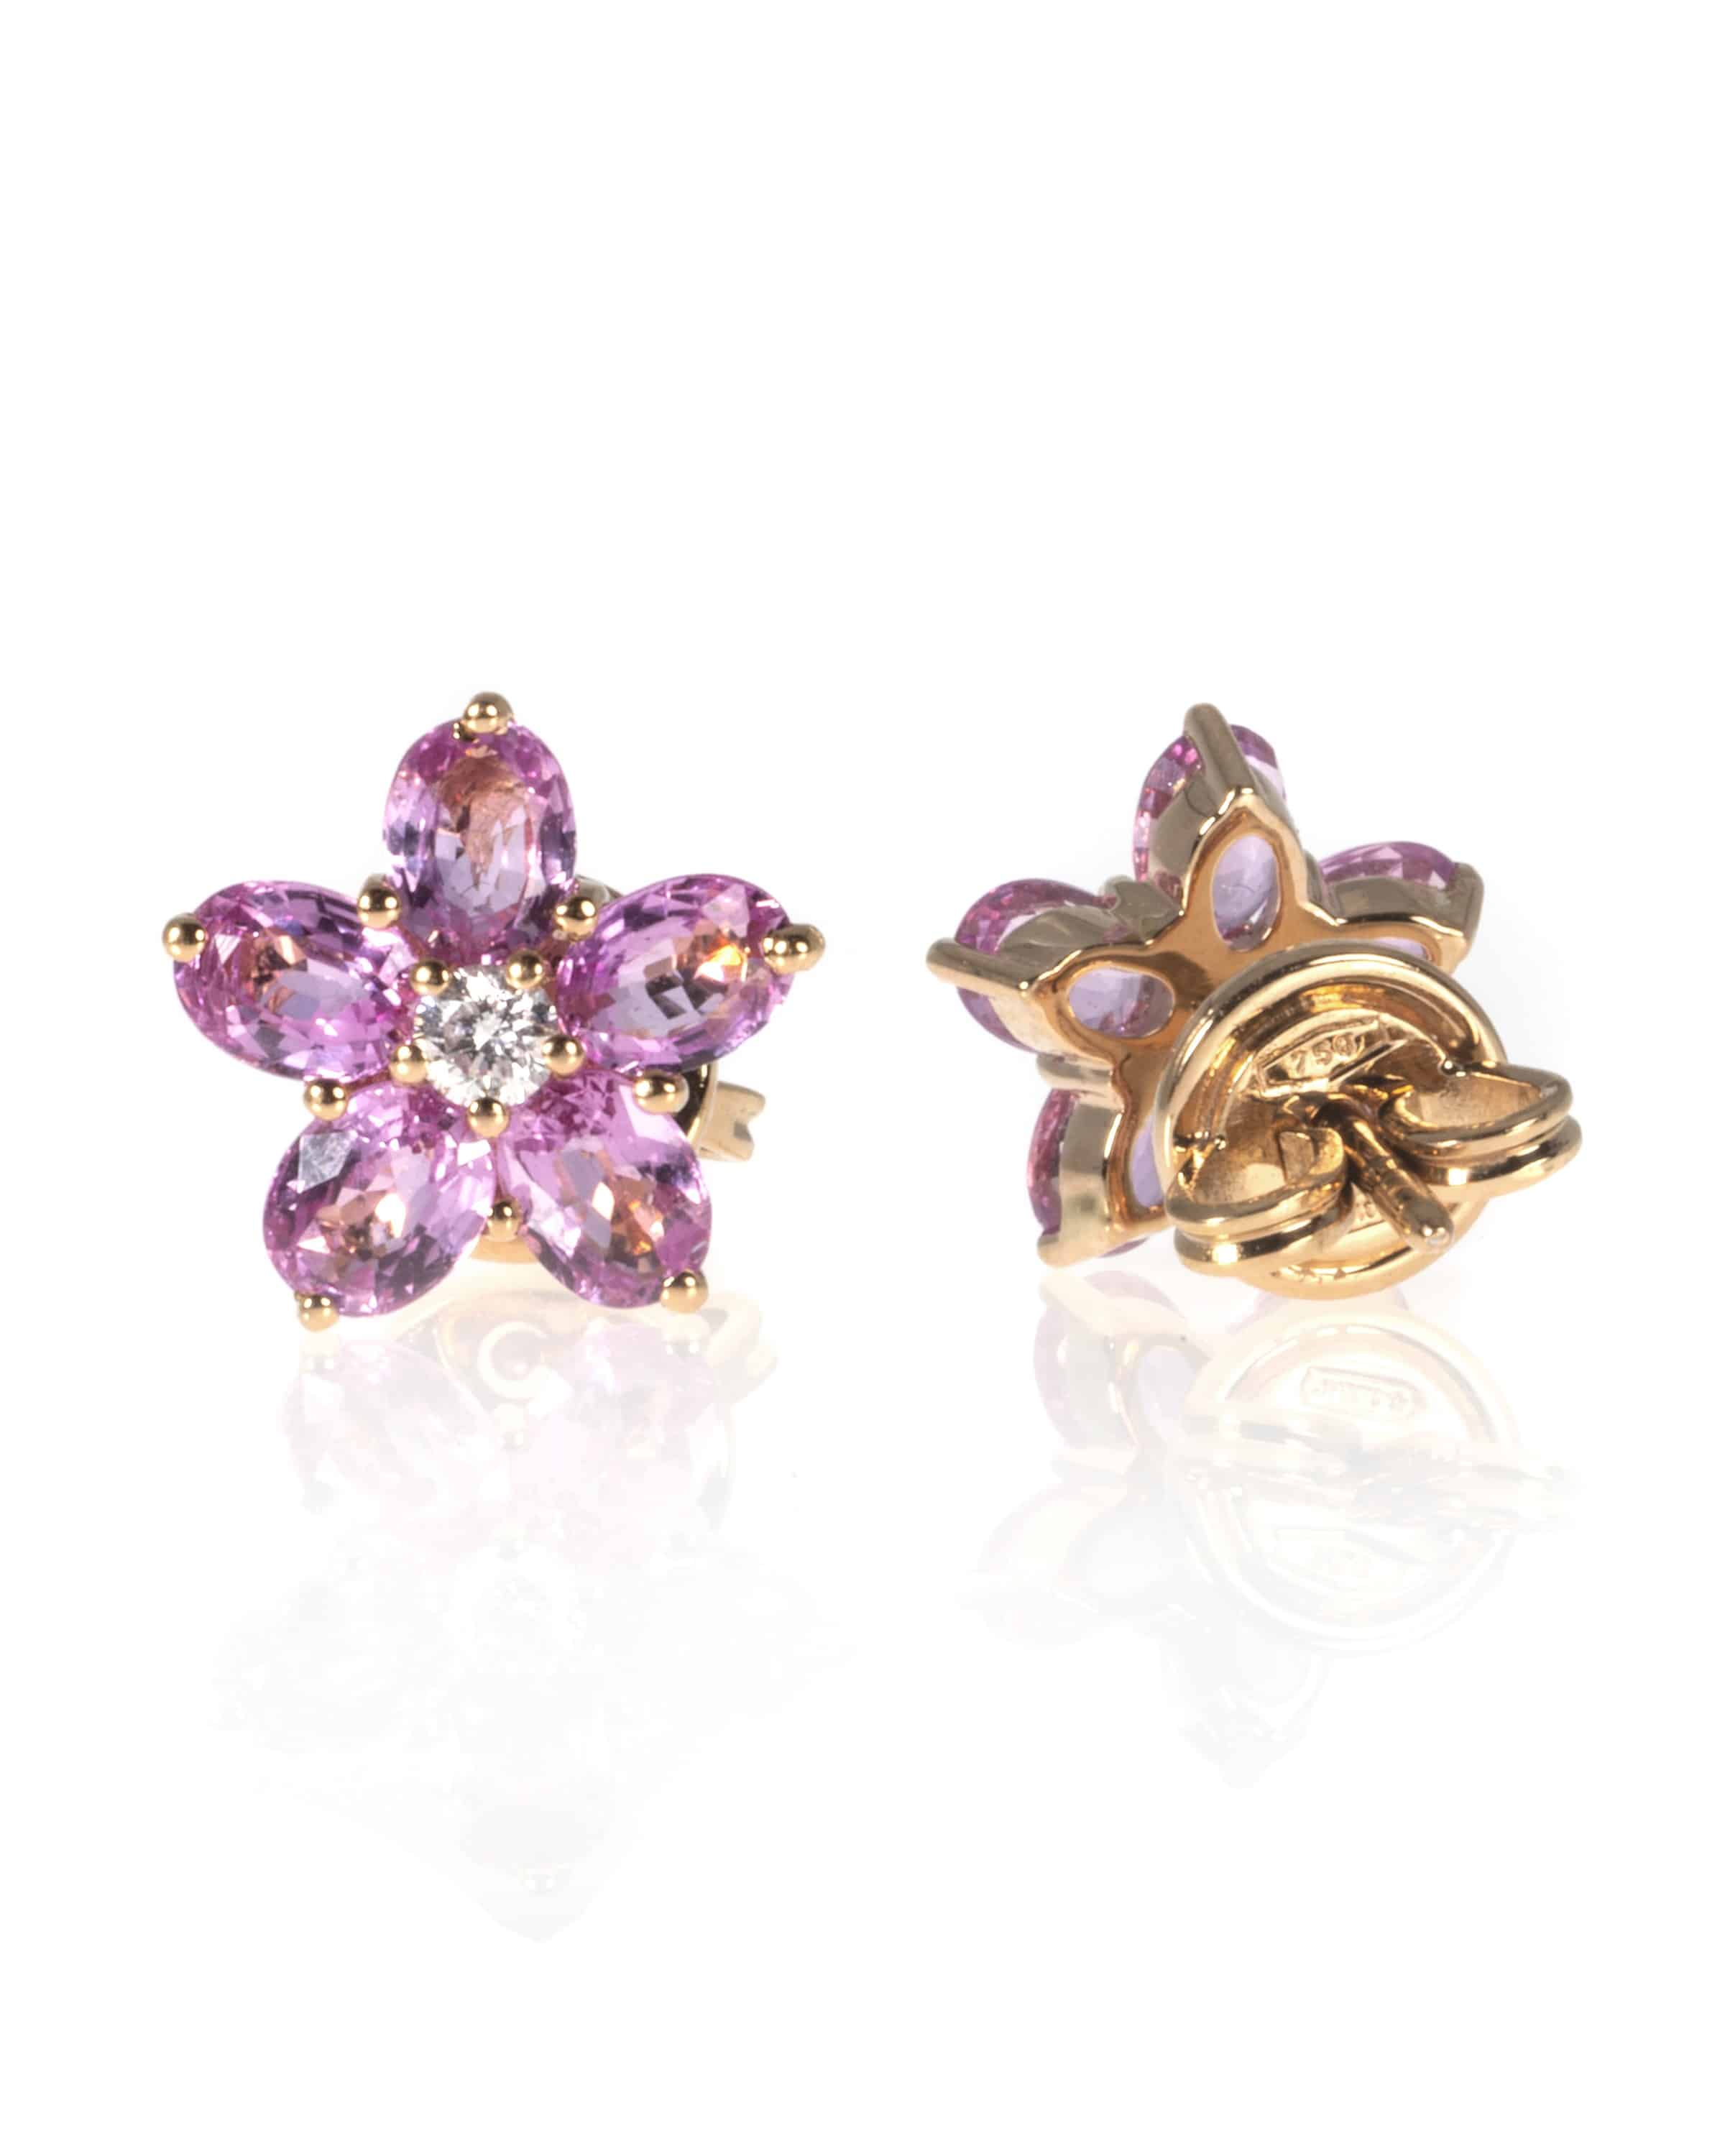 Crivelli 18k Rose Gold Diamond And Sapphire Earrings 117-ORFIORE-13163656